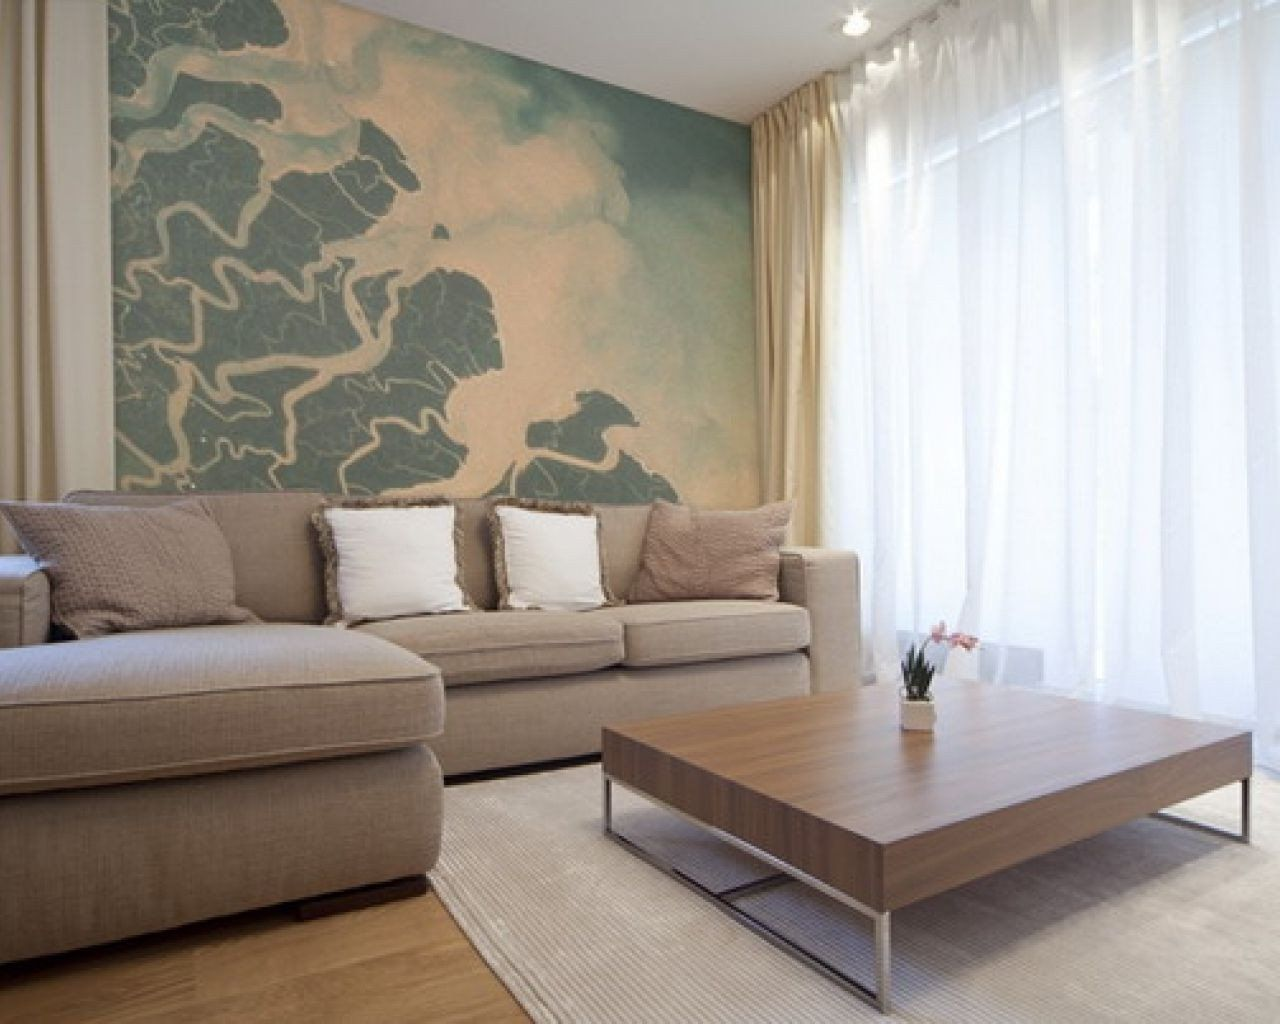 10+ Amazing Textured Wall In Living Room